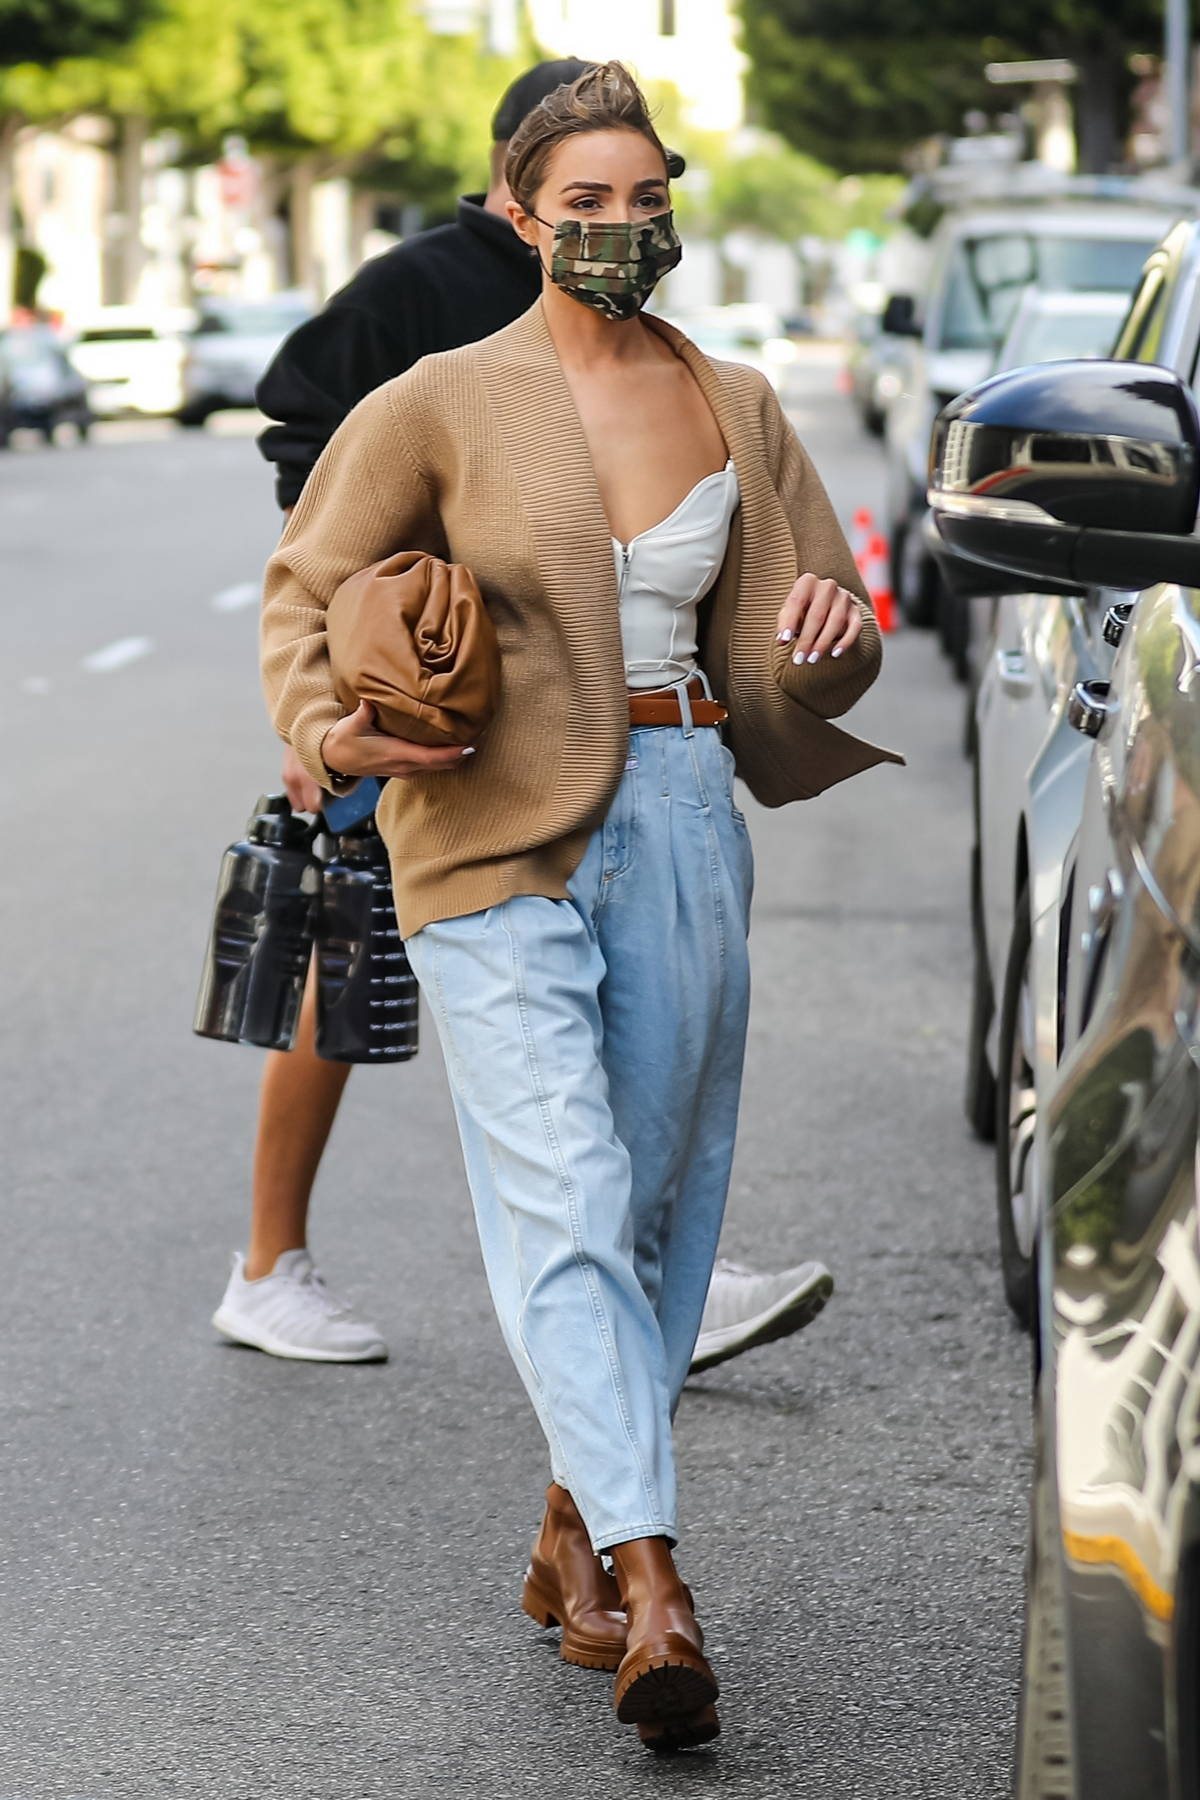 Olivia Culpo looks chic in a brown cardigan while visiting Epione skin care clinic in Beverly Hills, California